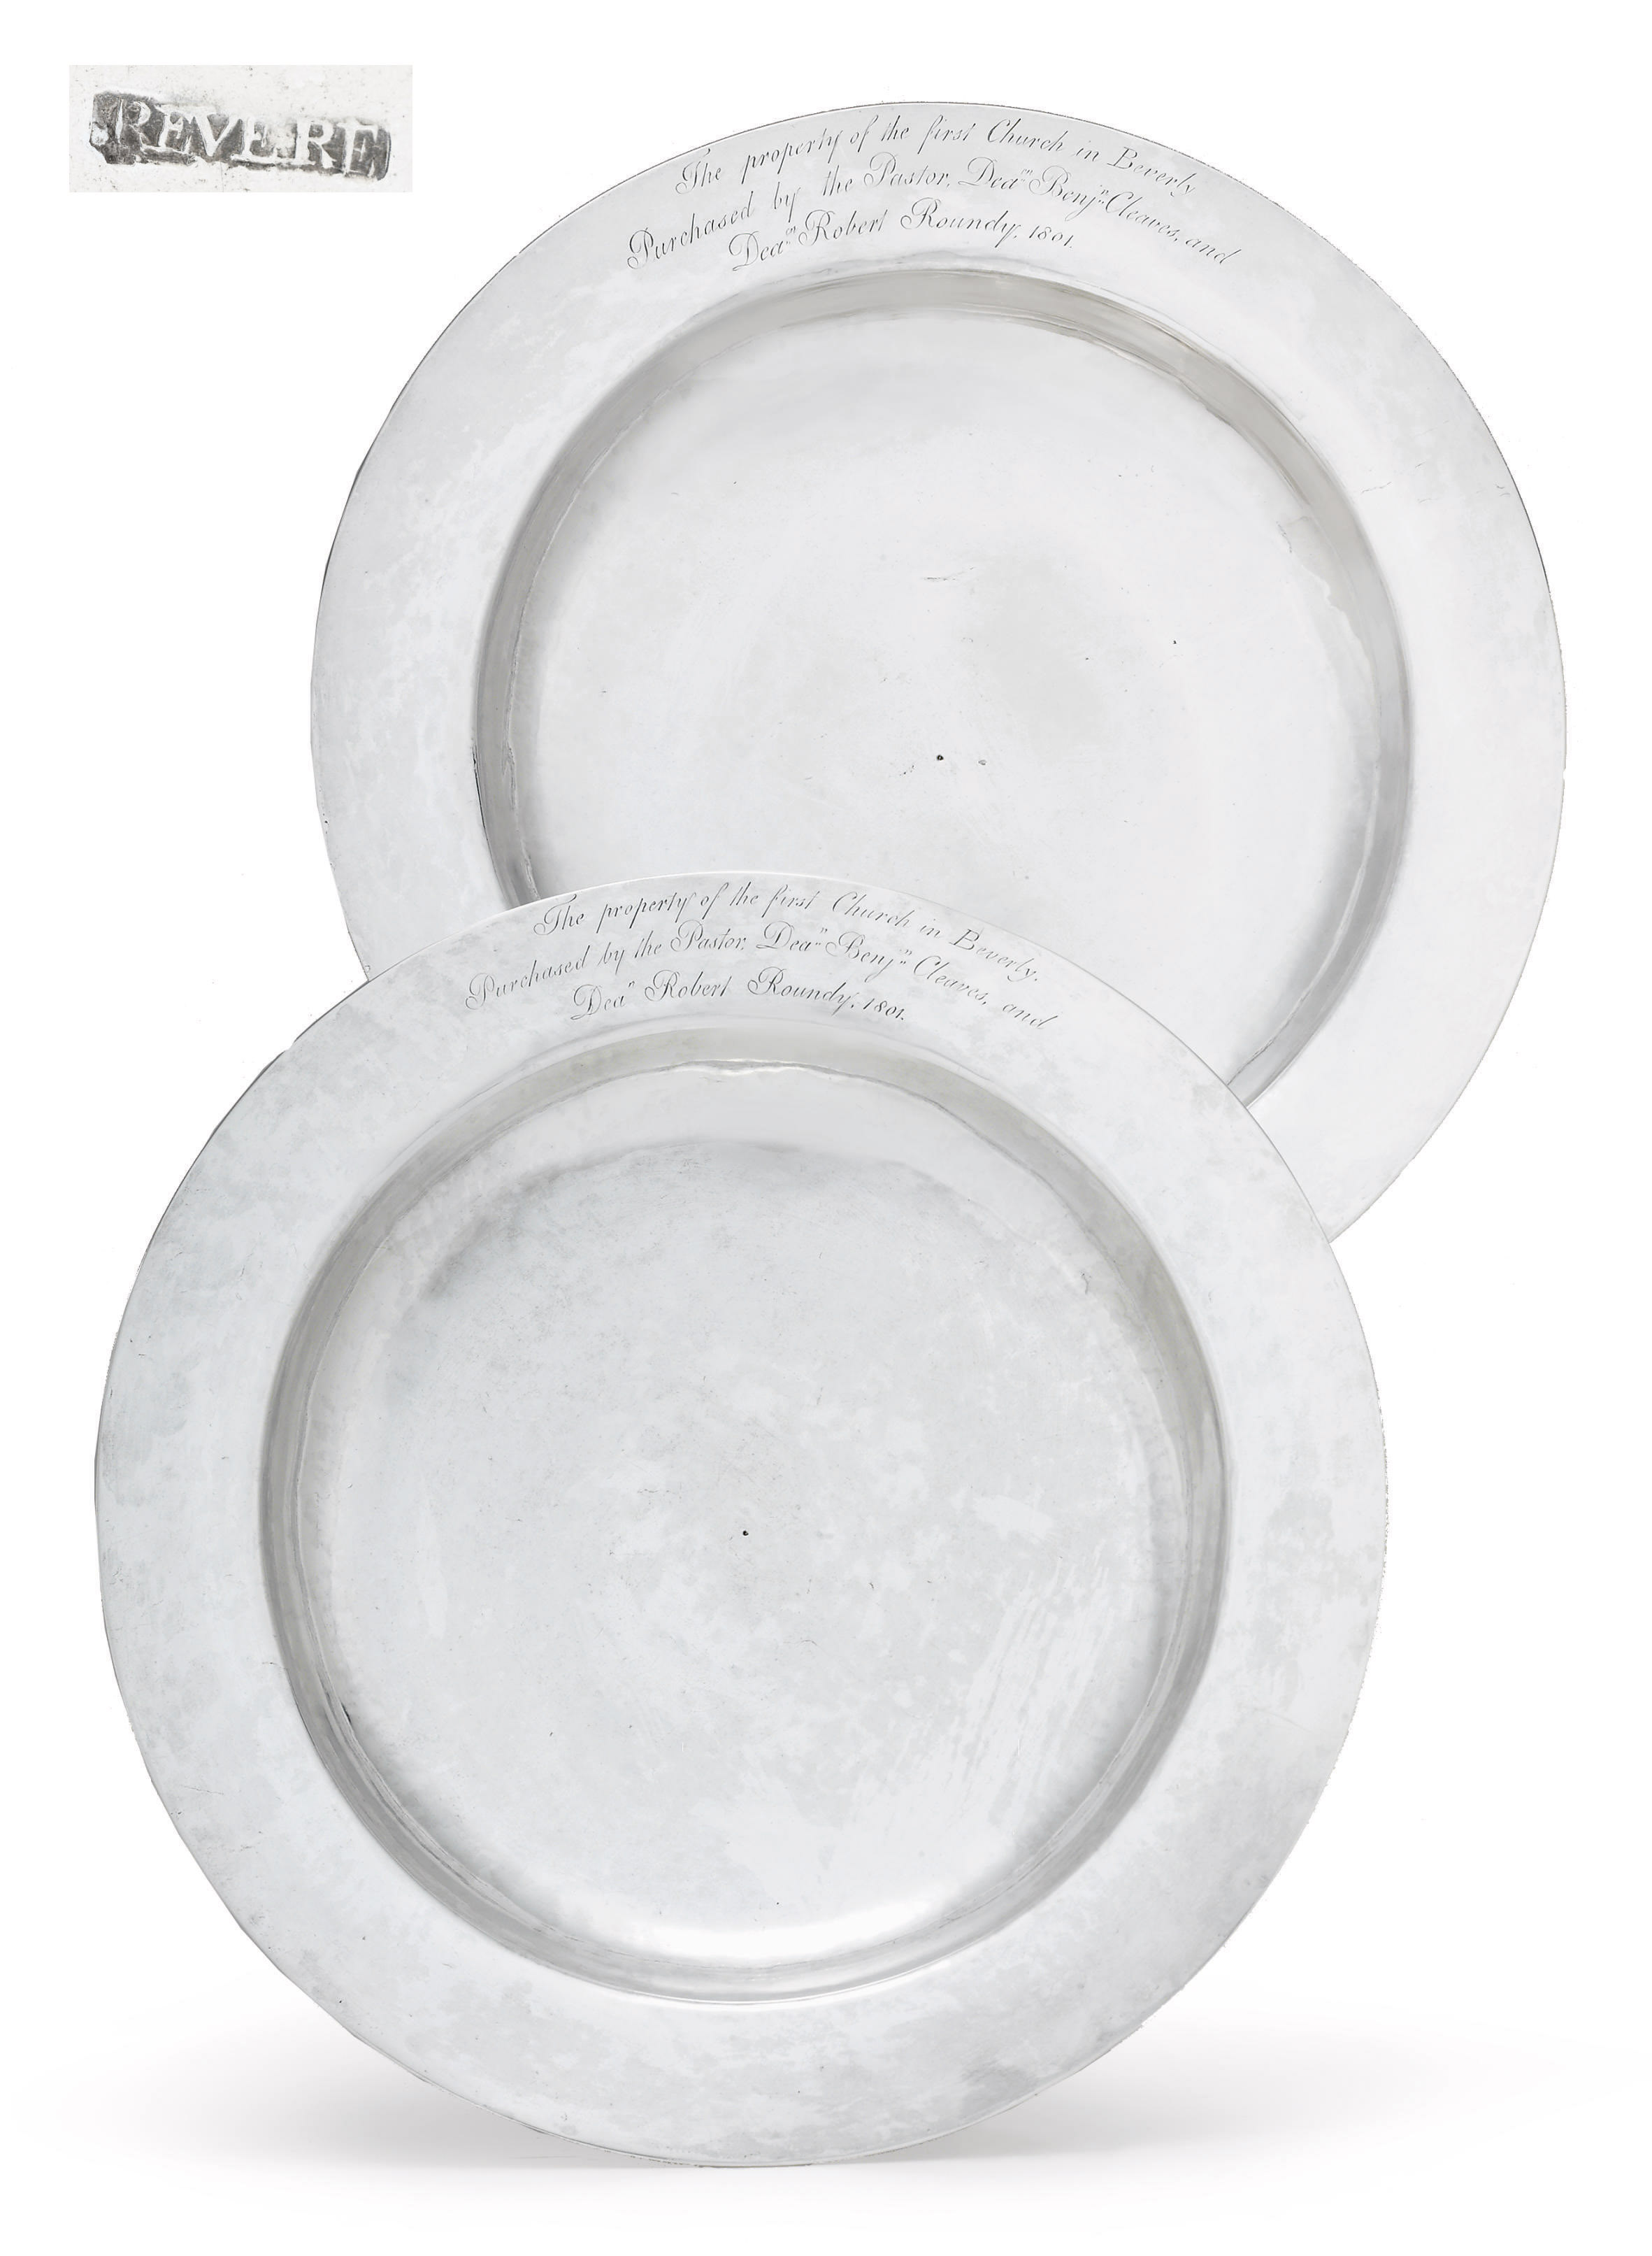 A PAIR OF SILVER COMMUNION DISHES